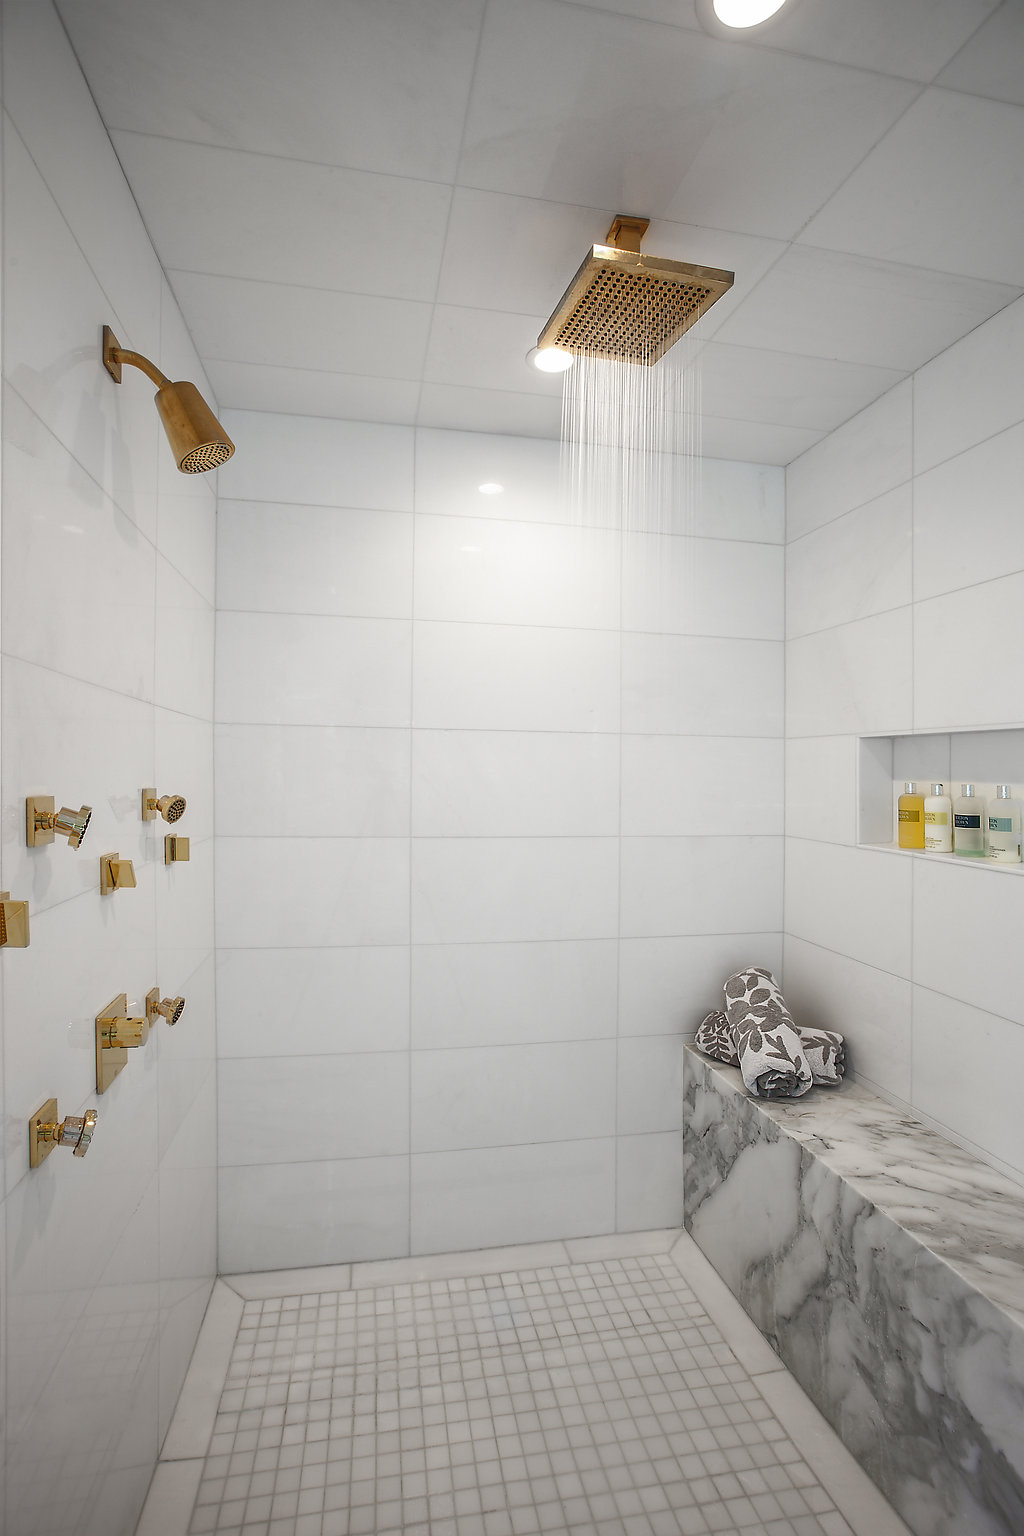 THE MASTER SHOWER